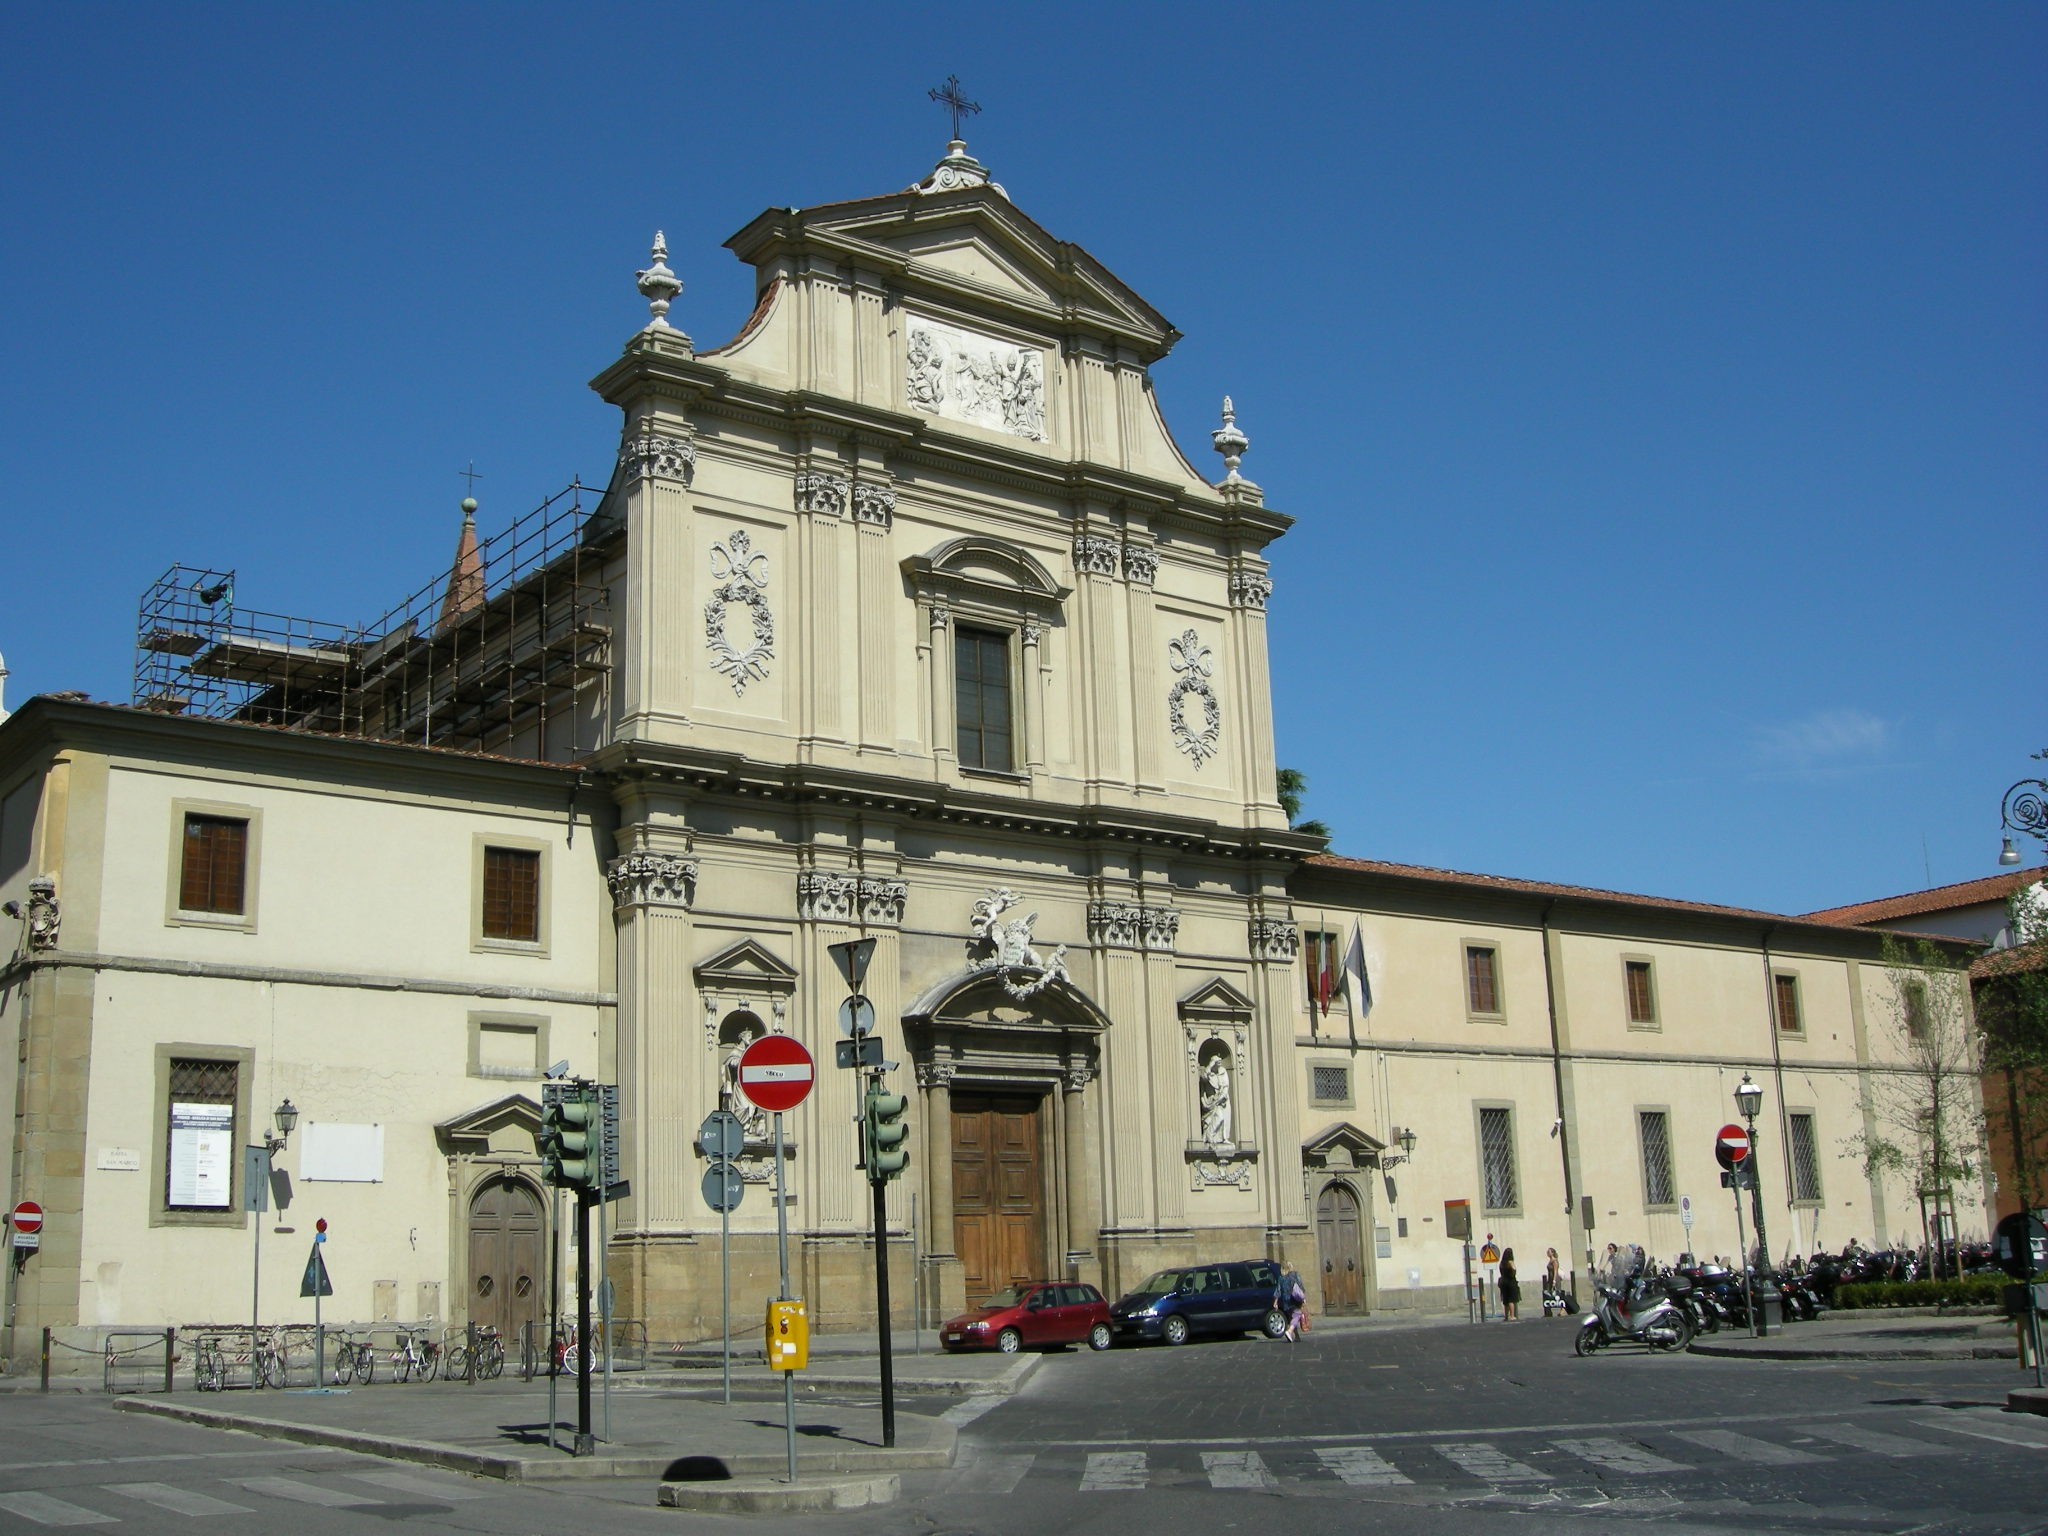 Saint Mark's English Church, Florence: All year